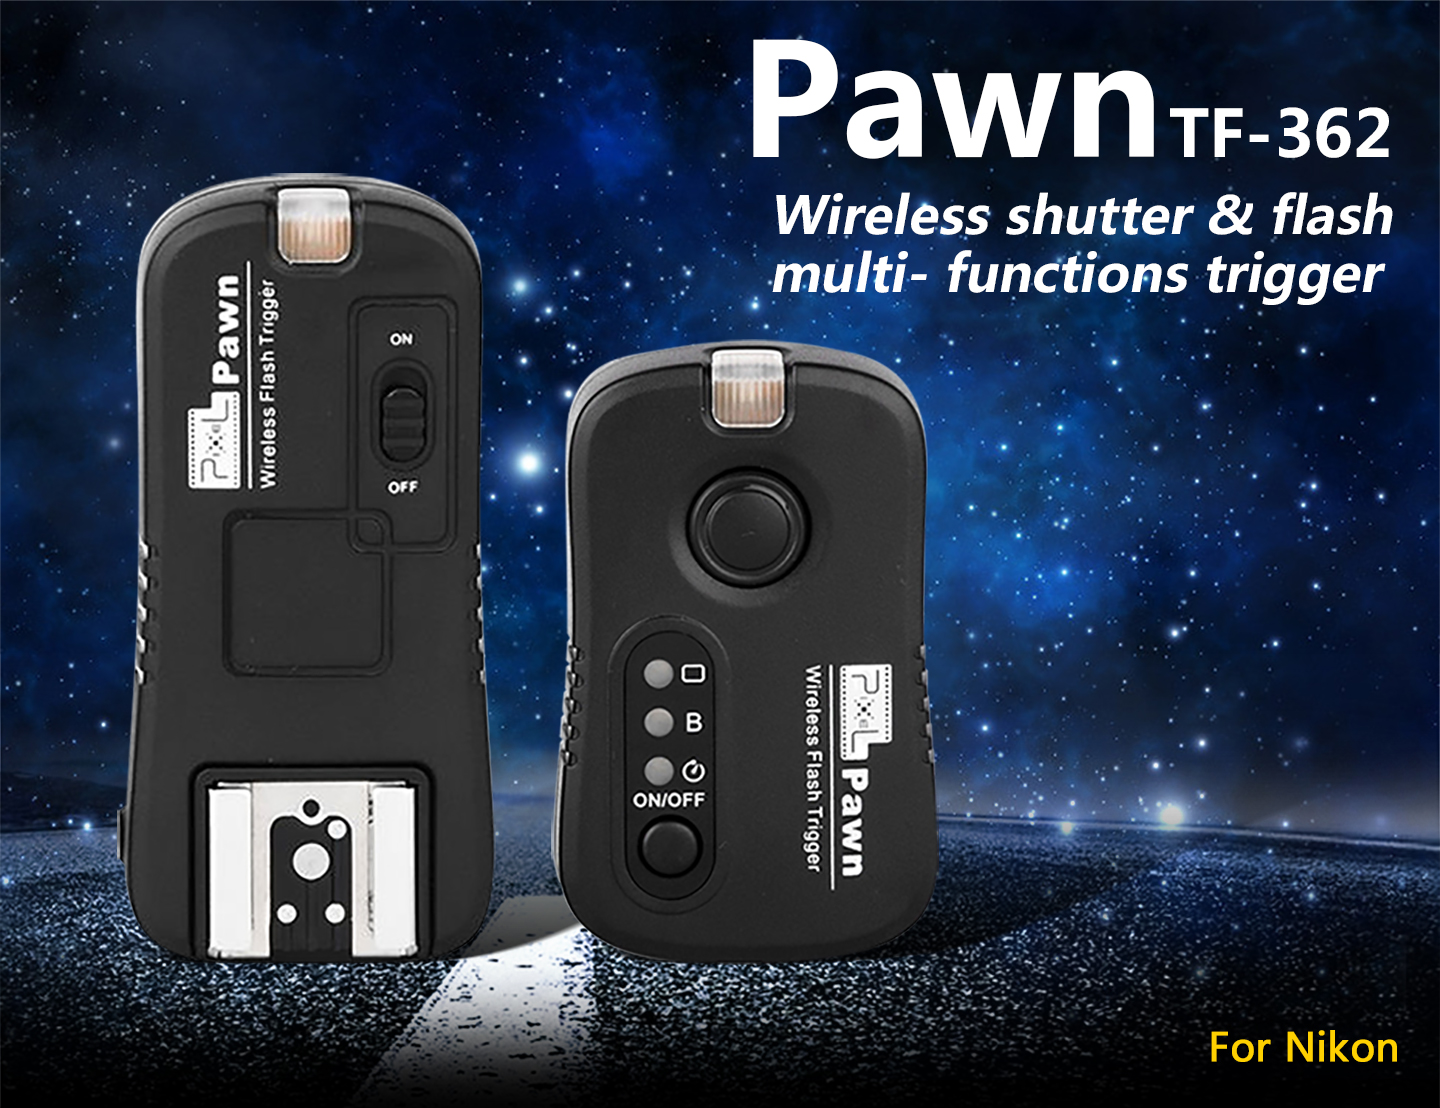 Pawn TF-362 Wireless shutter & flash multi-functions trigger